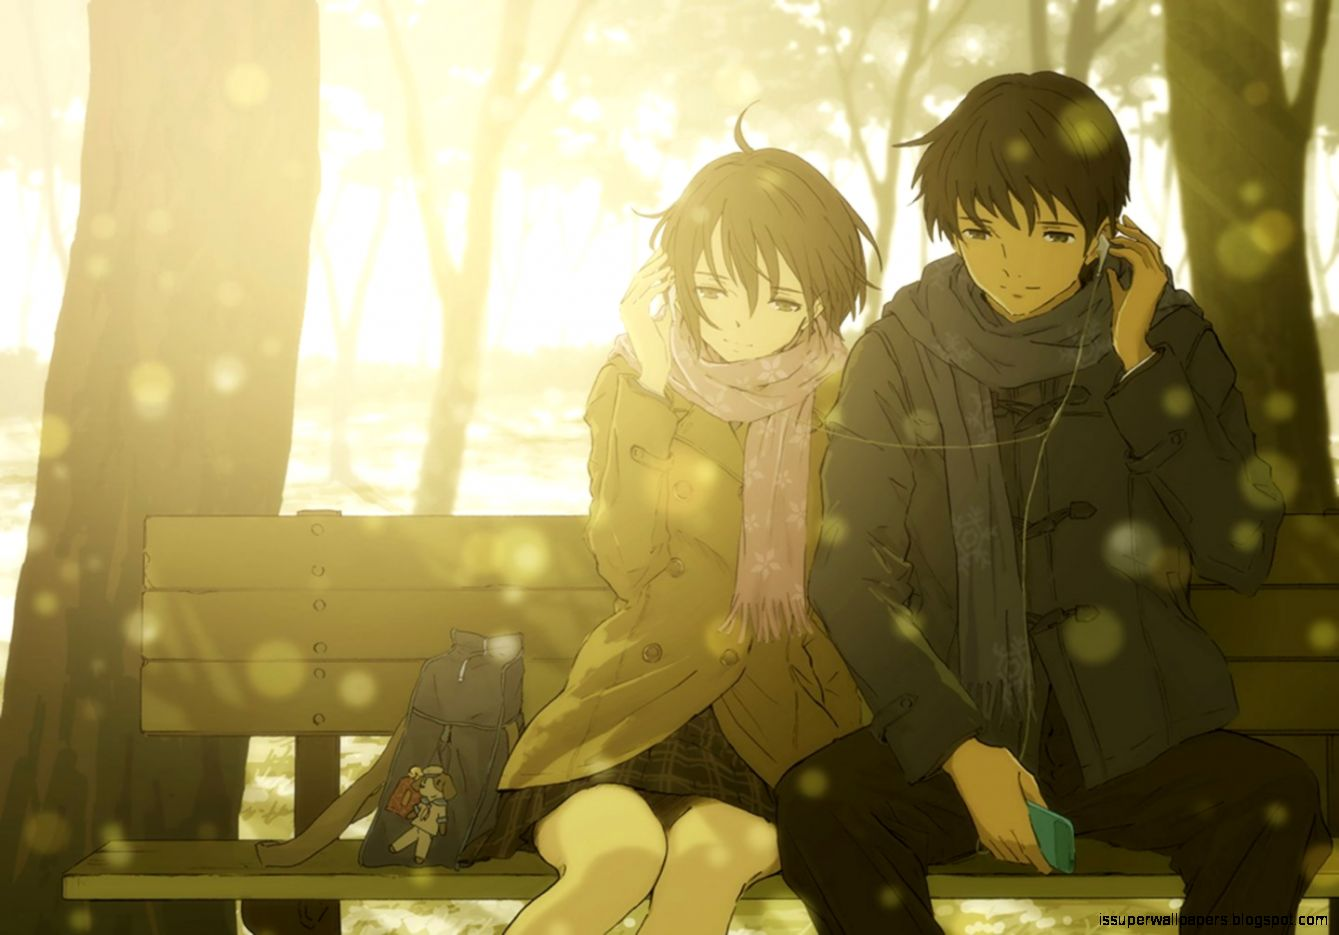 Unduh 820+ Wallpaper Anime Hd Romantic Gratis Terbaru